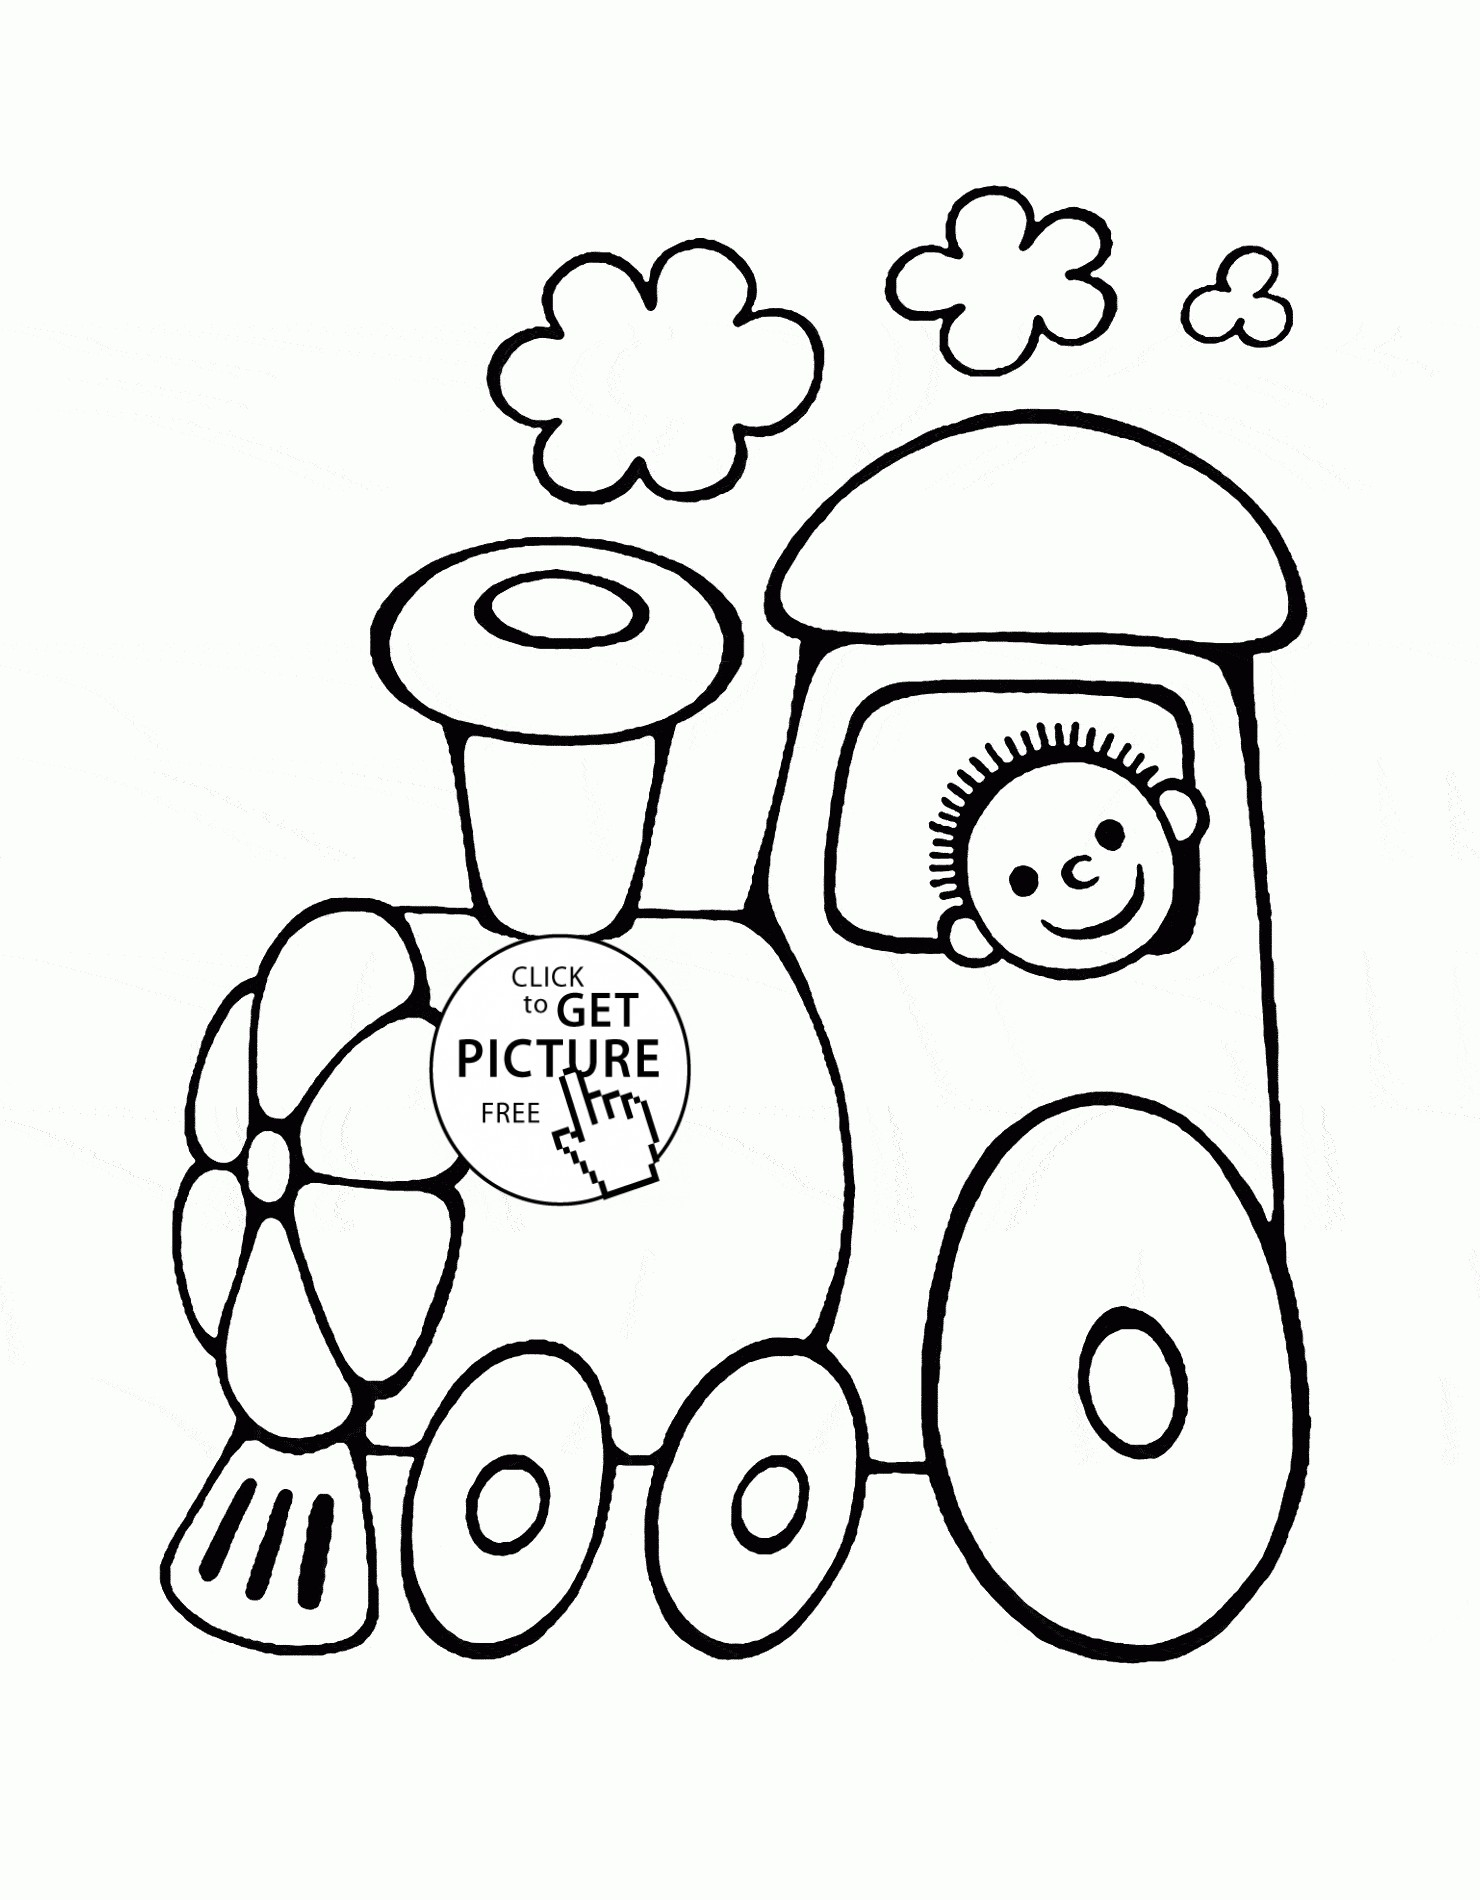 Pdf Coloring Pages For Kids Pig Coloring Pages For Kids With Halloween Coloring Pages Printable